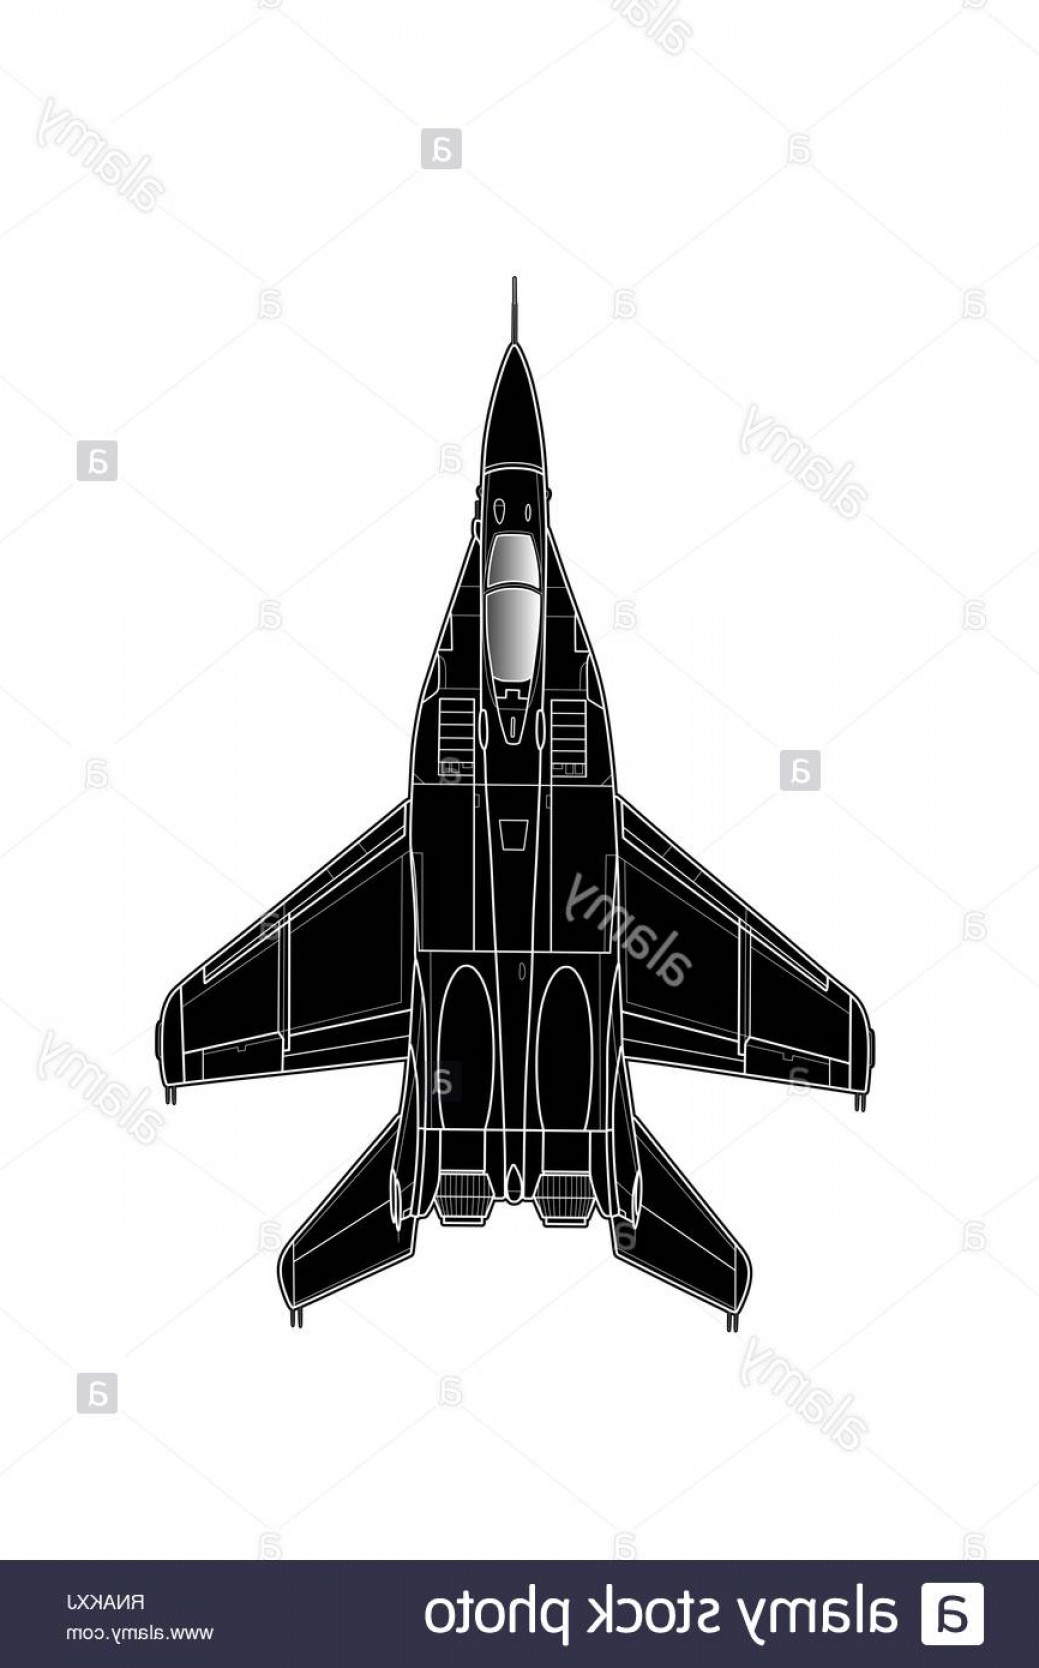 Vector X-15 Art: Modern Russian Jet Fighter Aircraft Vector Draw Image